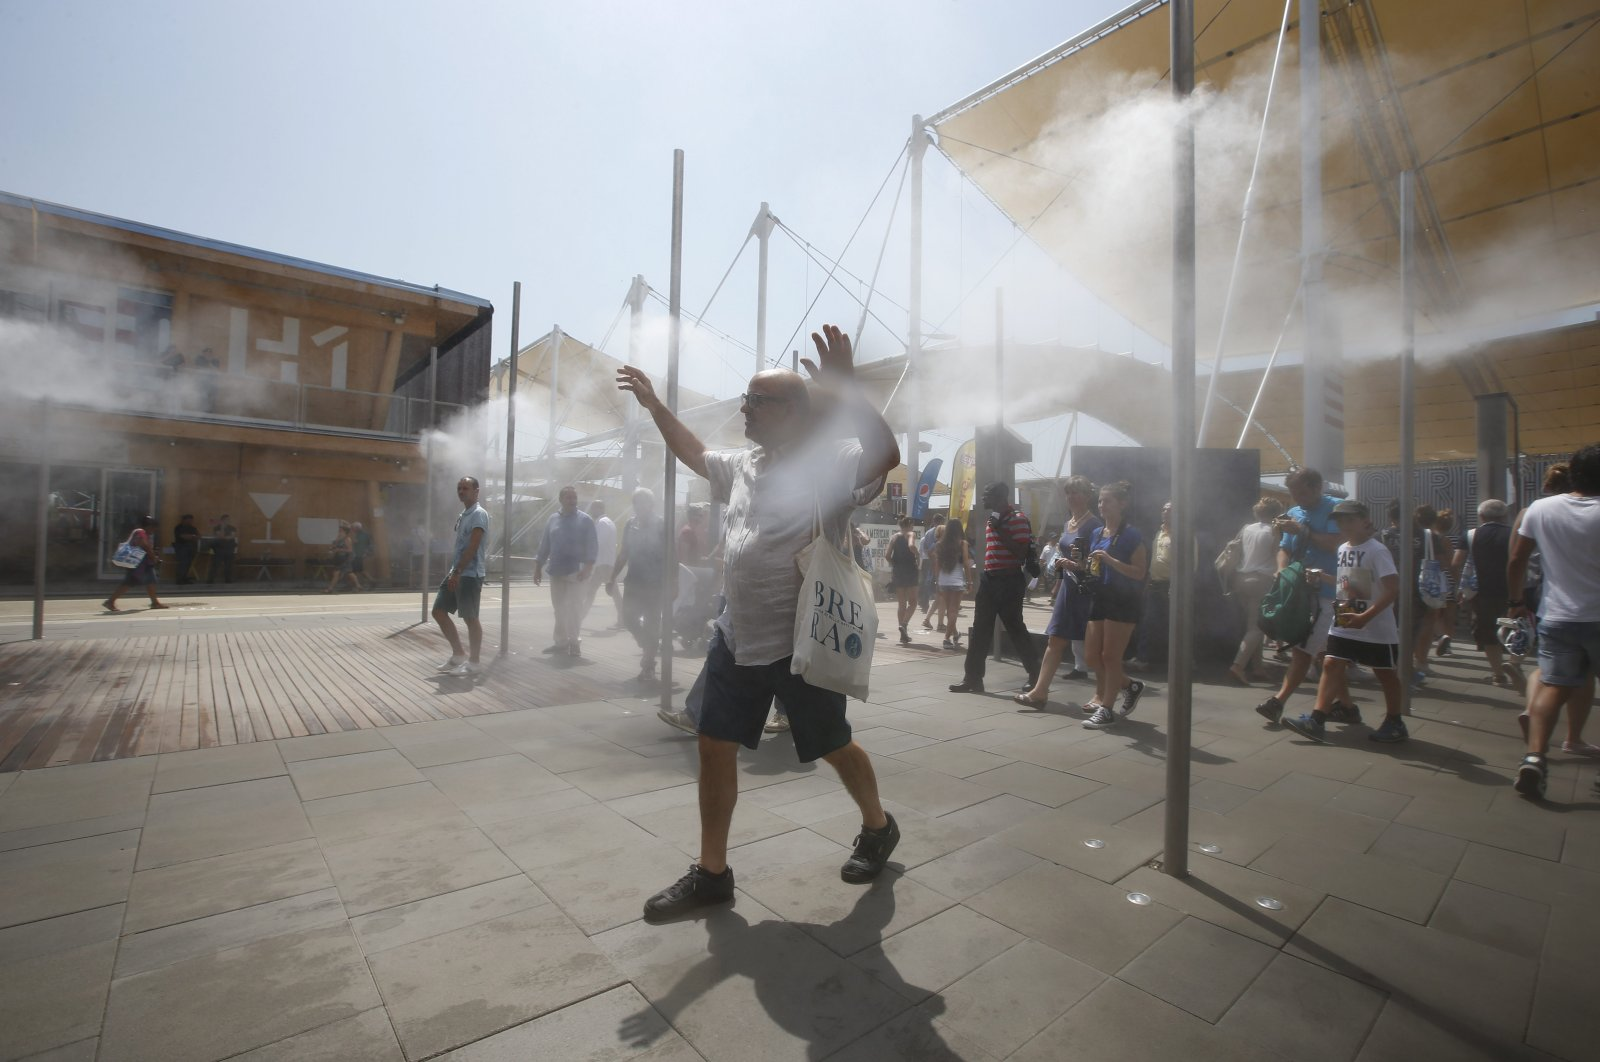 People cool off at the U.S. pavilion at the Expo 2015 world's fair in Rho, near Milan, Italy, Saturday, July 4, 2015. (AP File Photo)